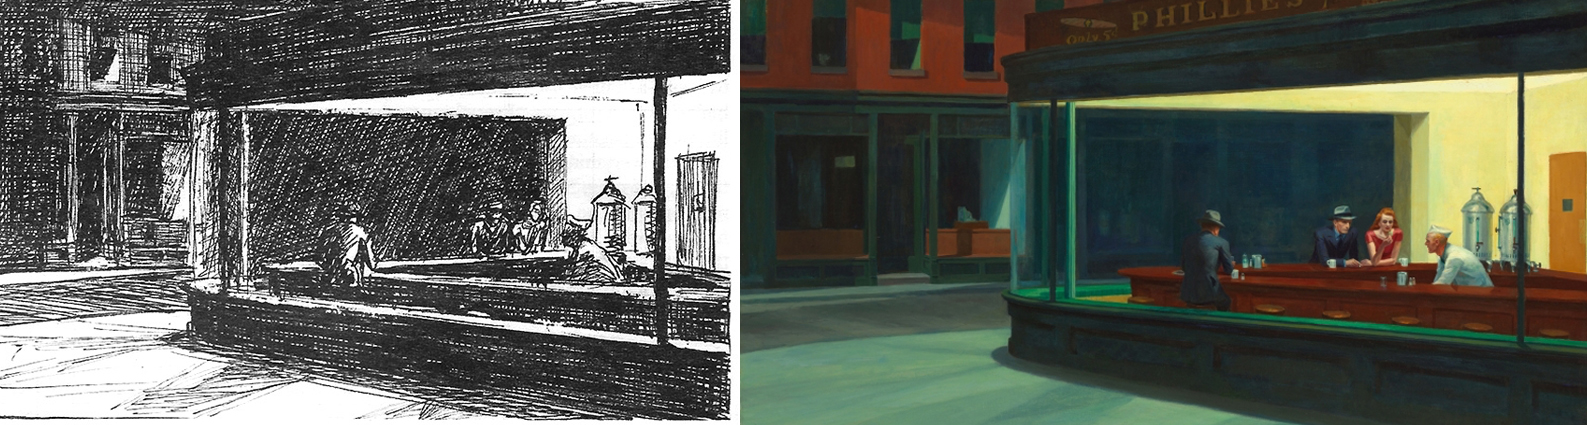 "Thumbnail design with ink pen for ""Nighthawks"" by Edward Hopper"